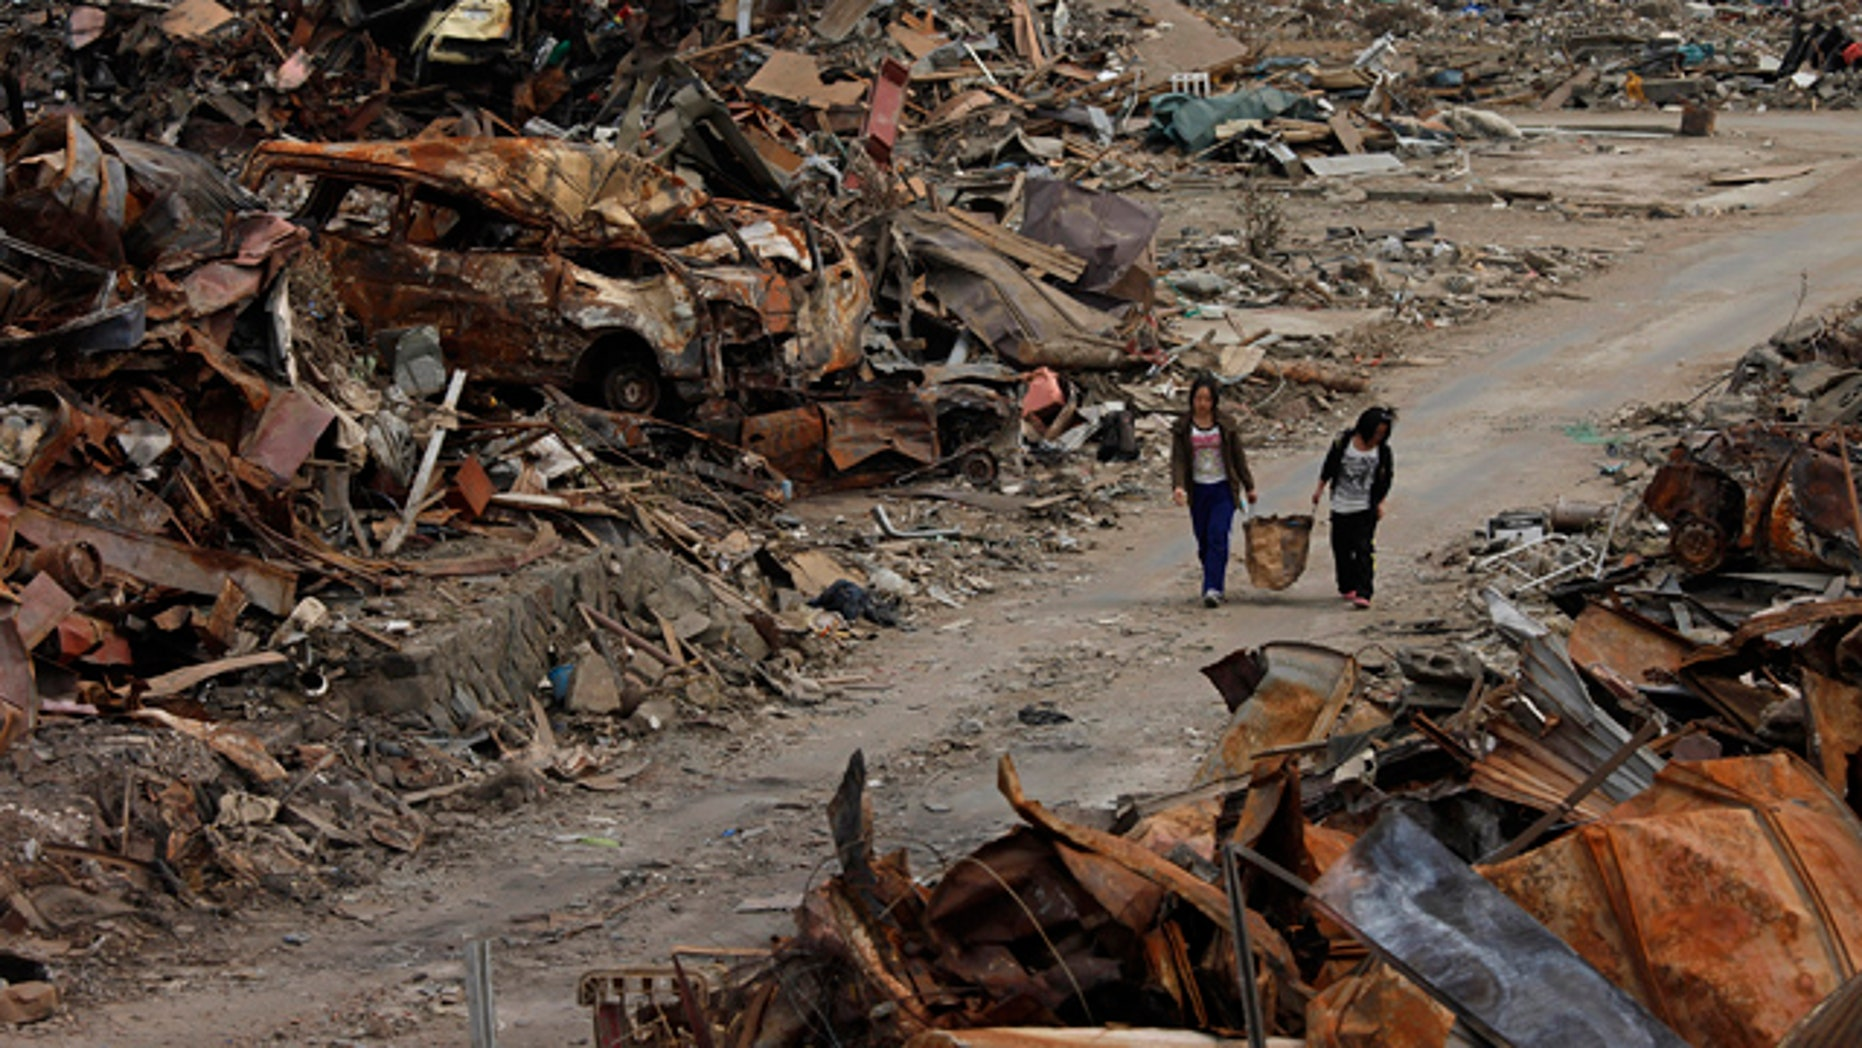 April 7: Two women walk past debris in an area devastated by the March 11 earthquake and tsunami in Ishinomaki, Miyagi Prefecture, northern Japan.